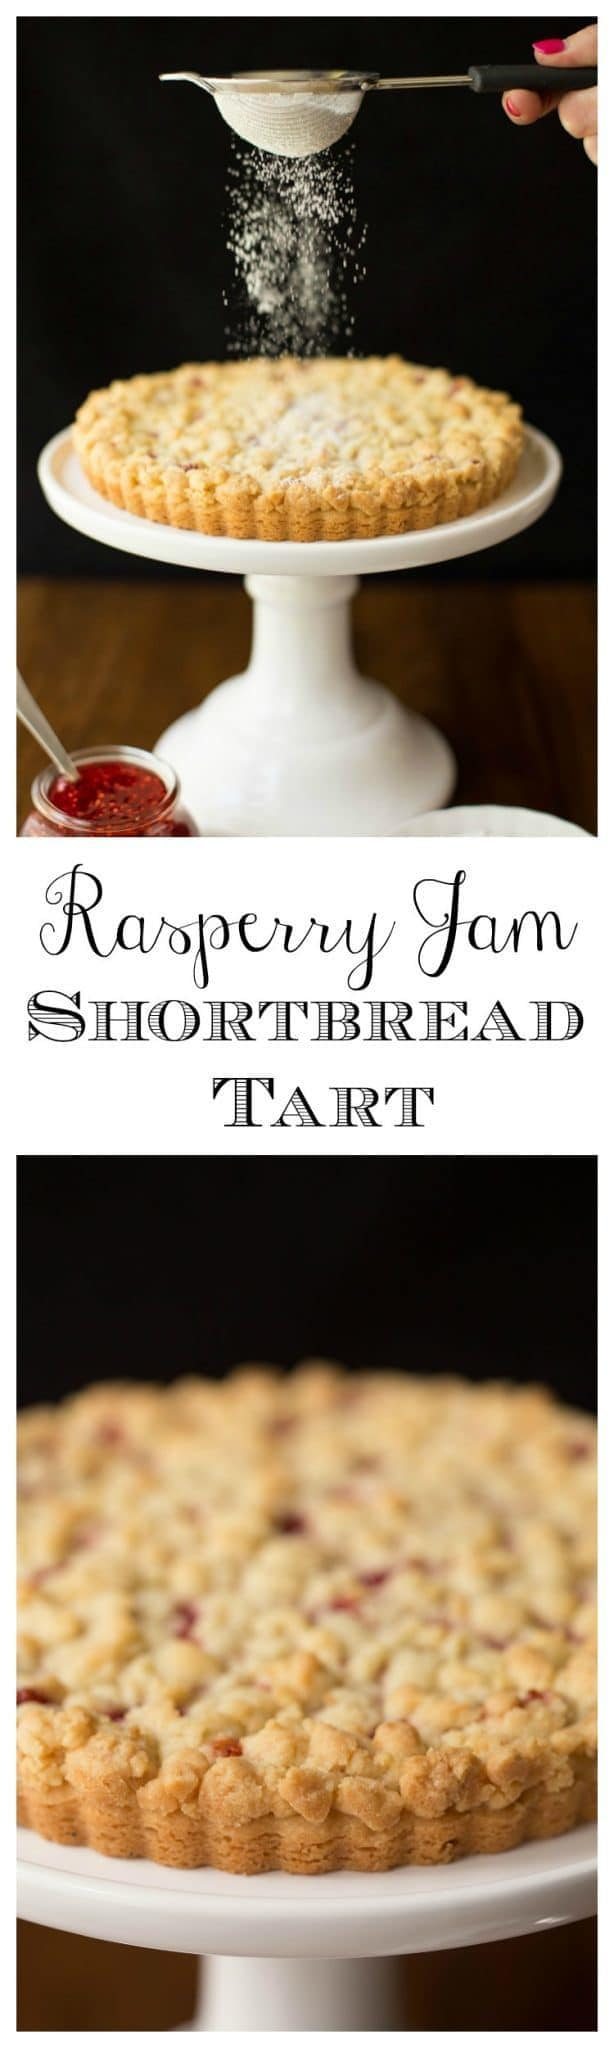 With a layer of sweet raspberry jam and the crisp, shortbread crust and buttery crumble topping, this might be one of the most delicious desserts you've had!